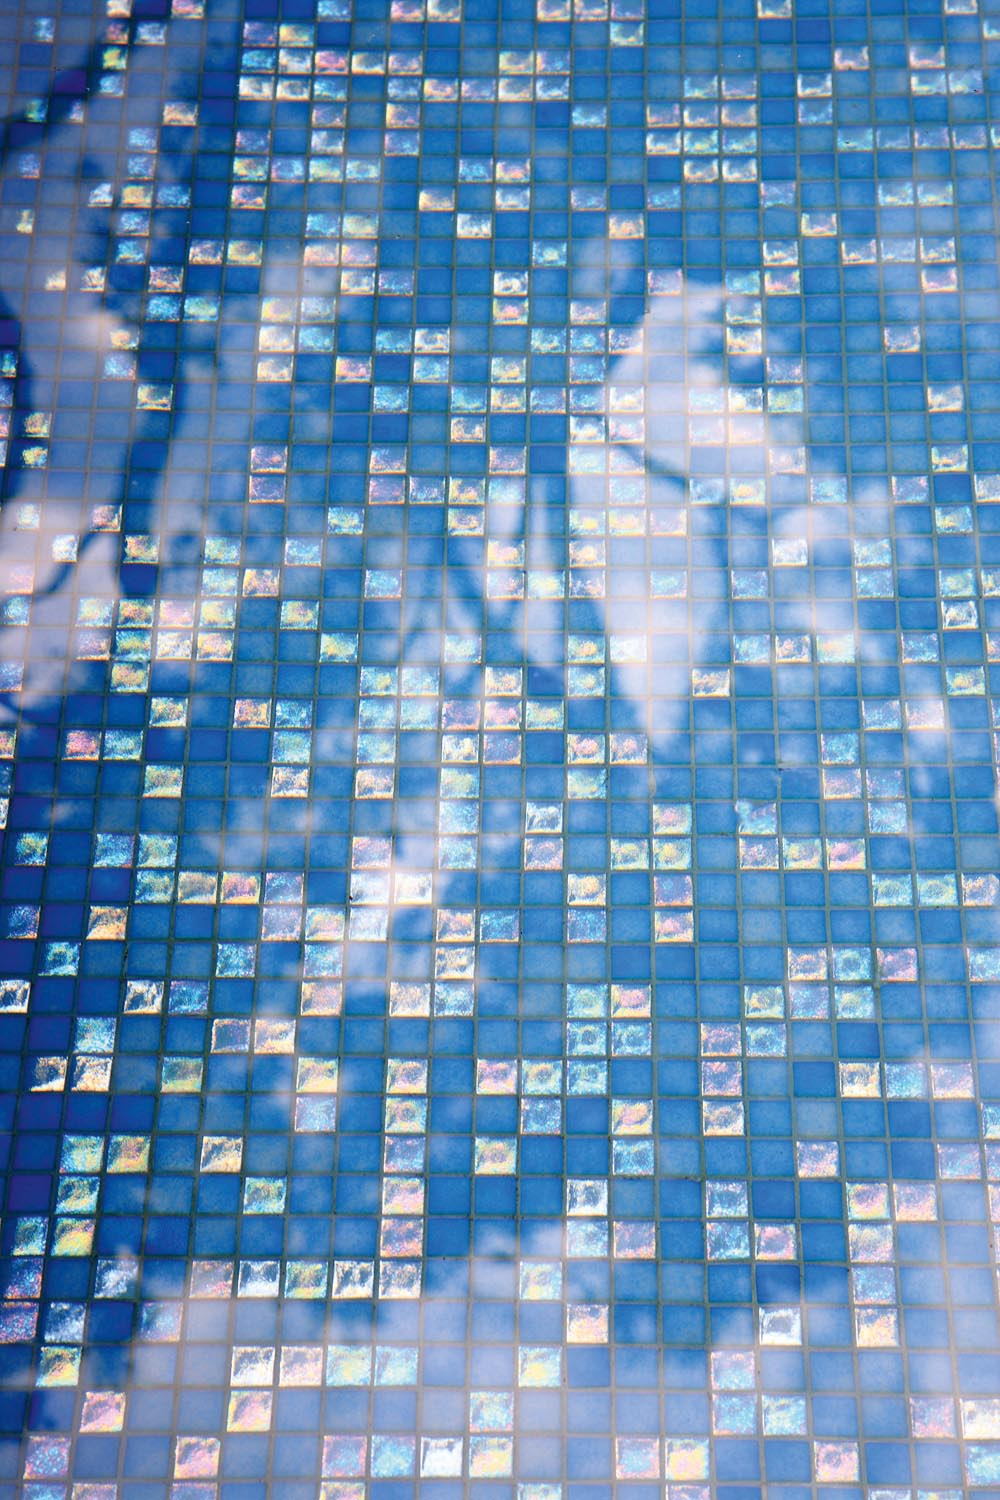 Blue shiny pool tiles